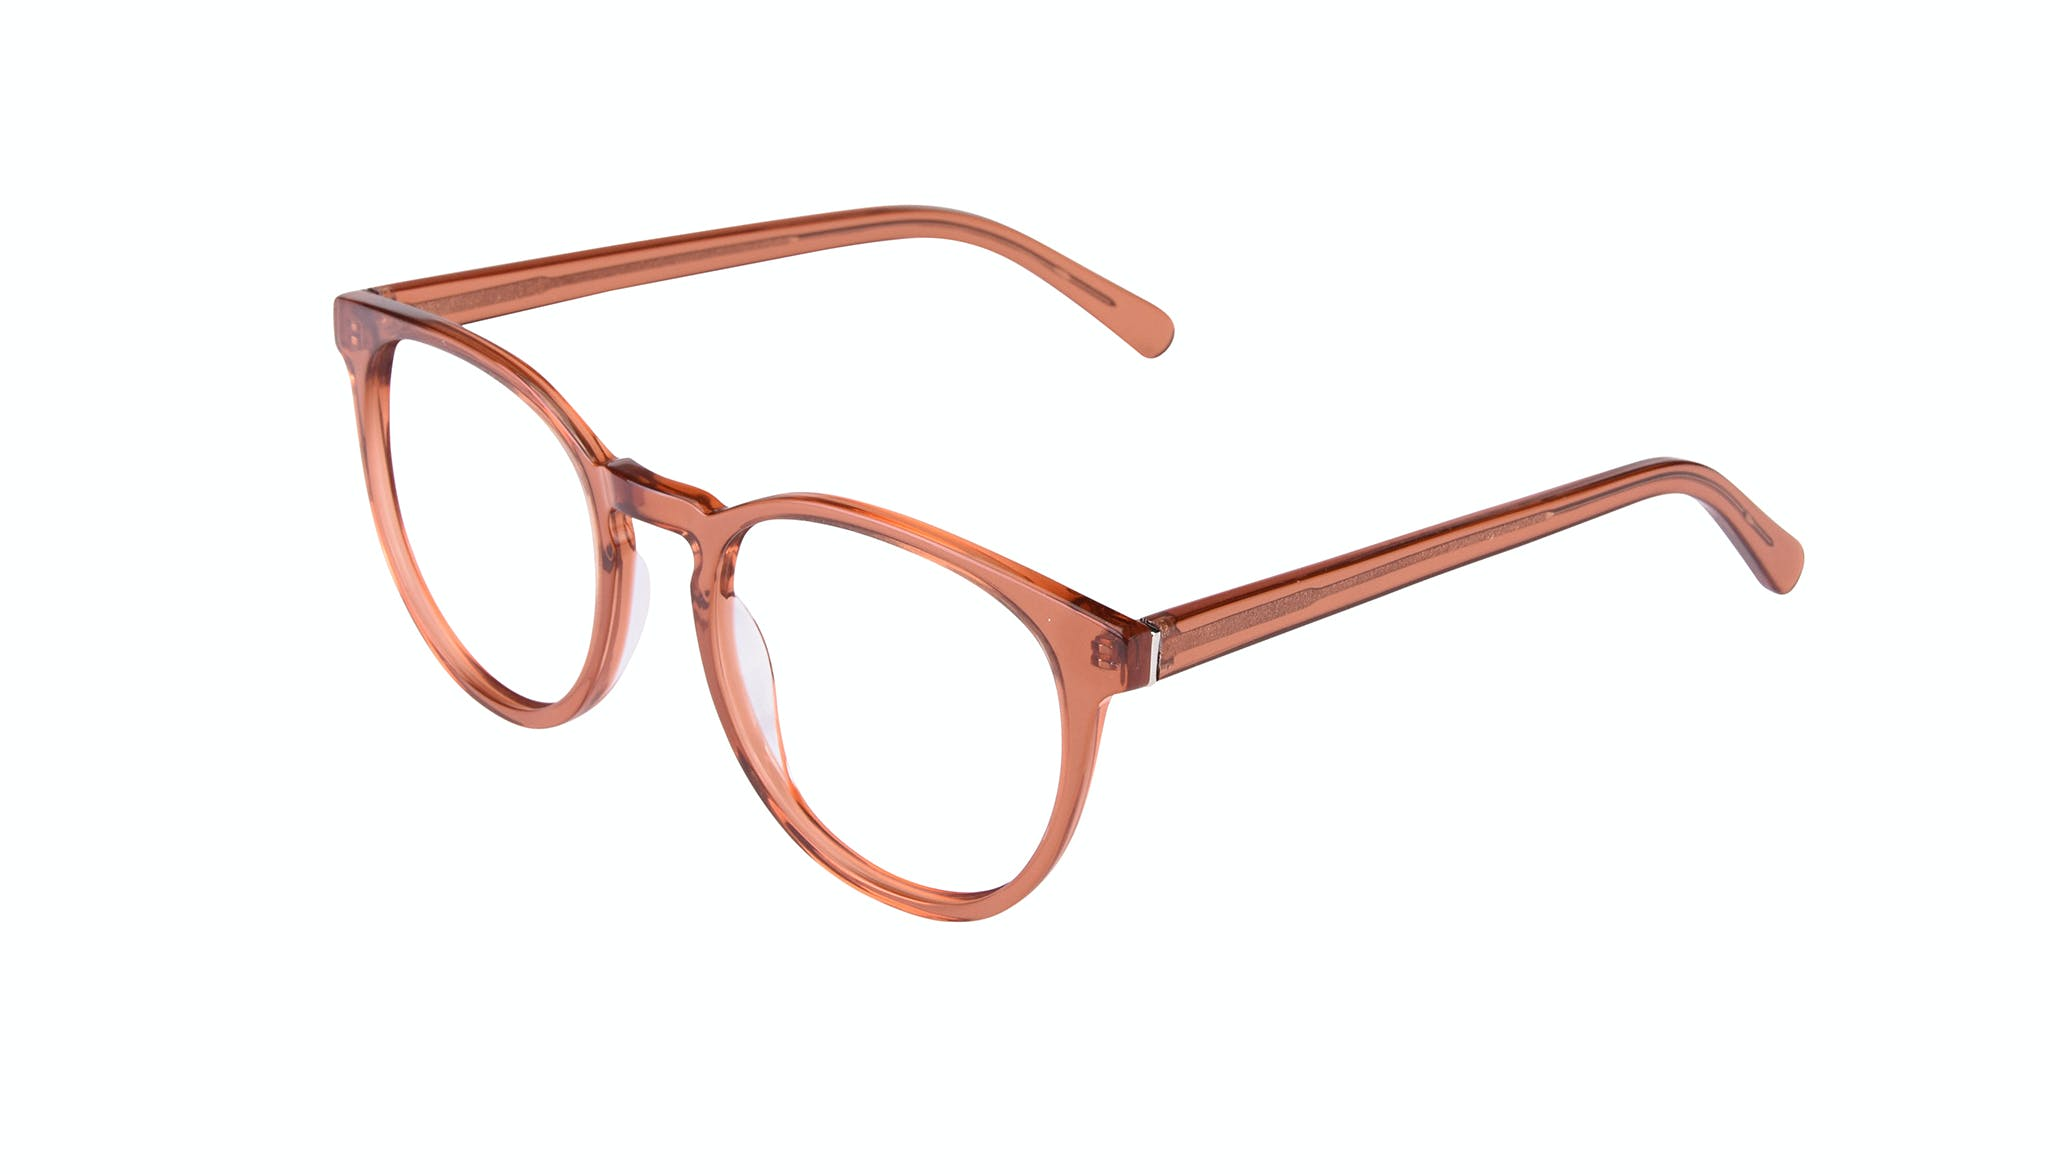 Affordable Fashion Glasses Round Eyeglasses Women Brilliant Umber Tilt